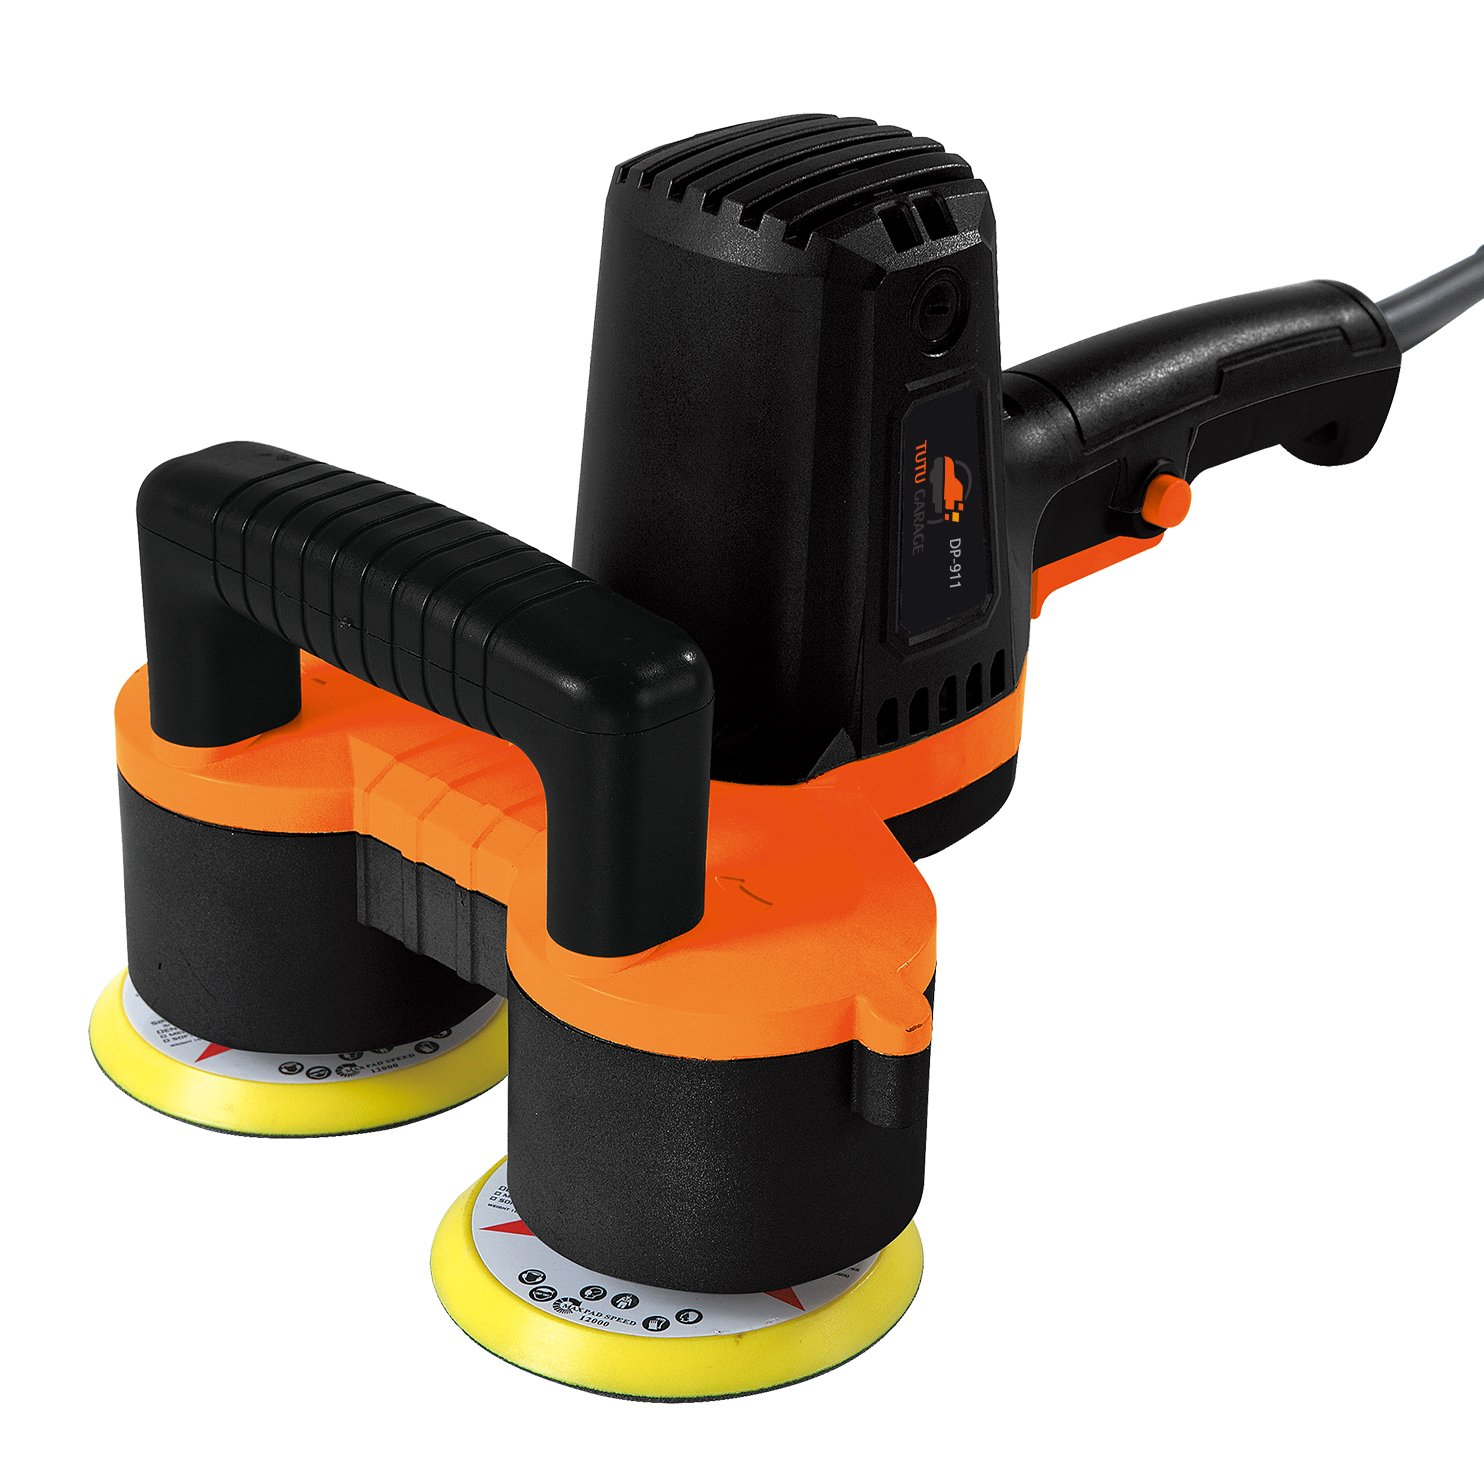 2018 Oileus Polisher 4-Inch Dual Head Polisher and Buffer - 6 Variable Speed Efficient Random Orbit Sander with 4 × Polishing Pads by Oileus (Image #2)